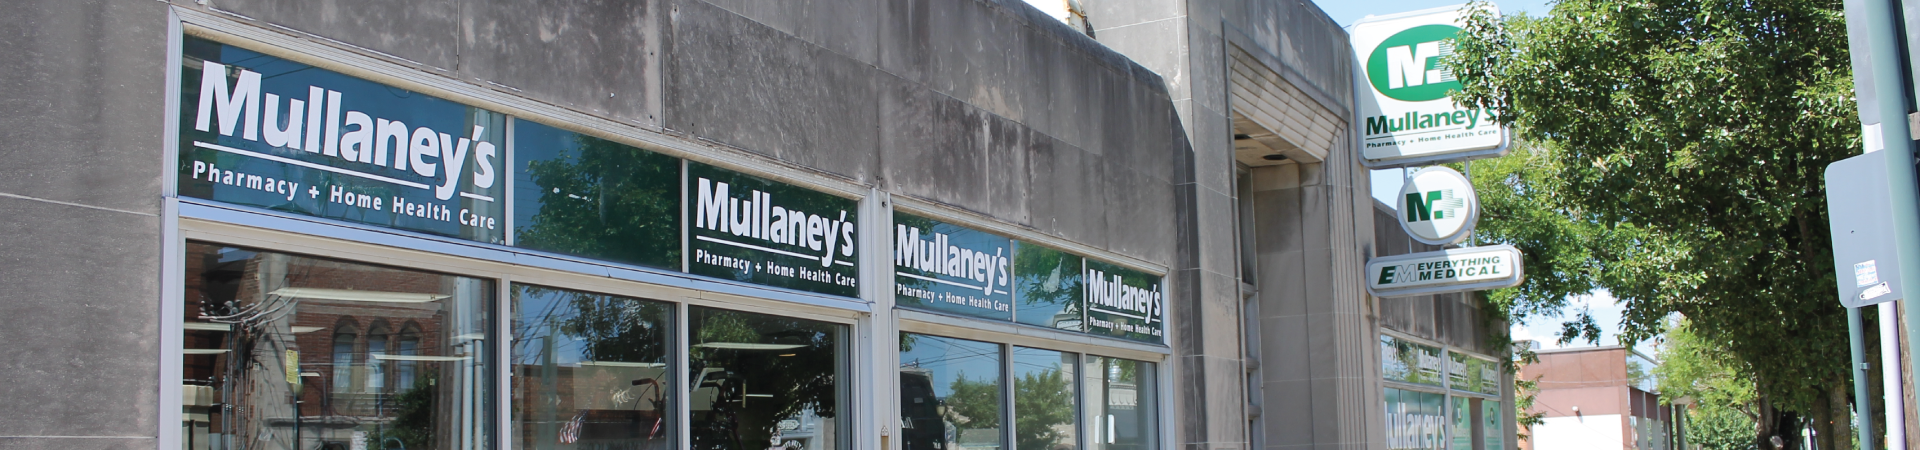 Mullaney's Pleasant Ridge